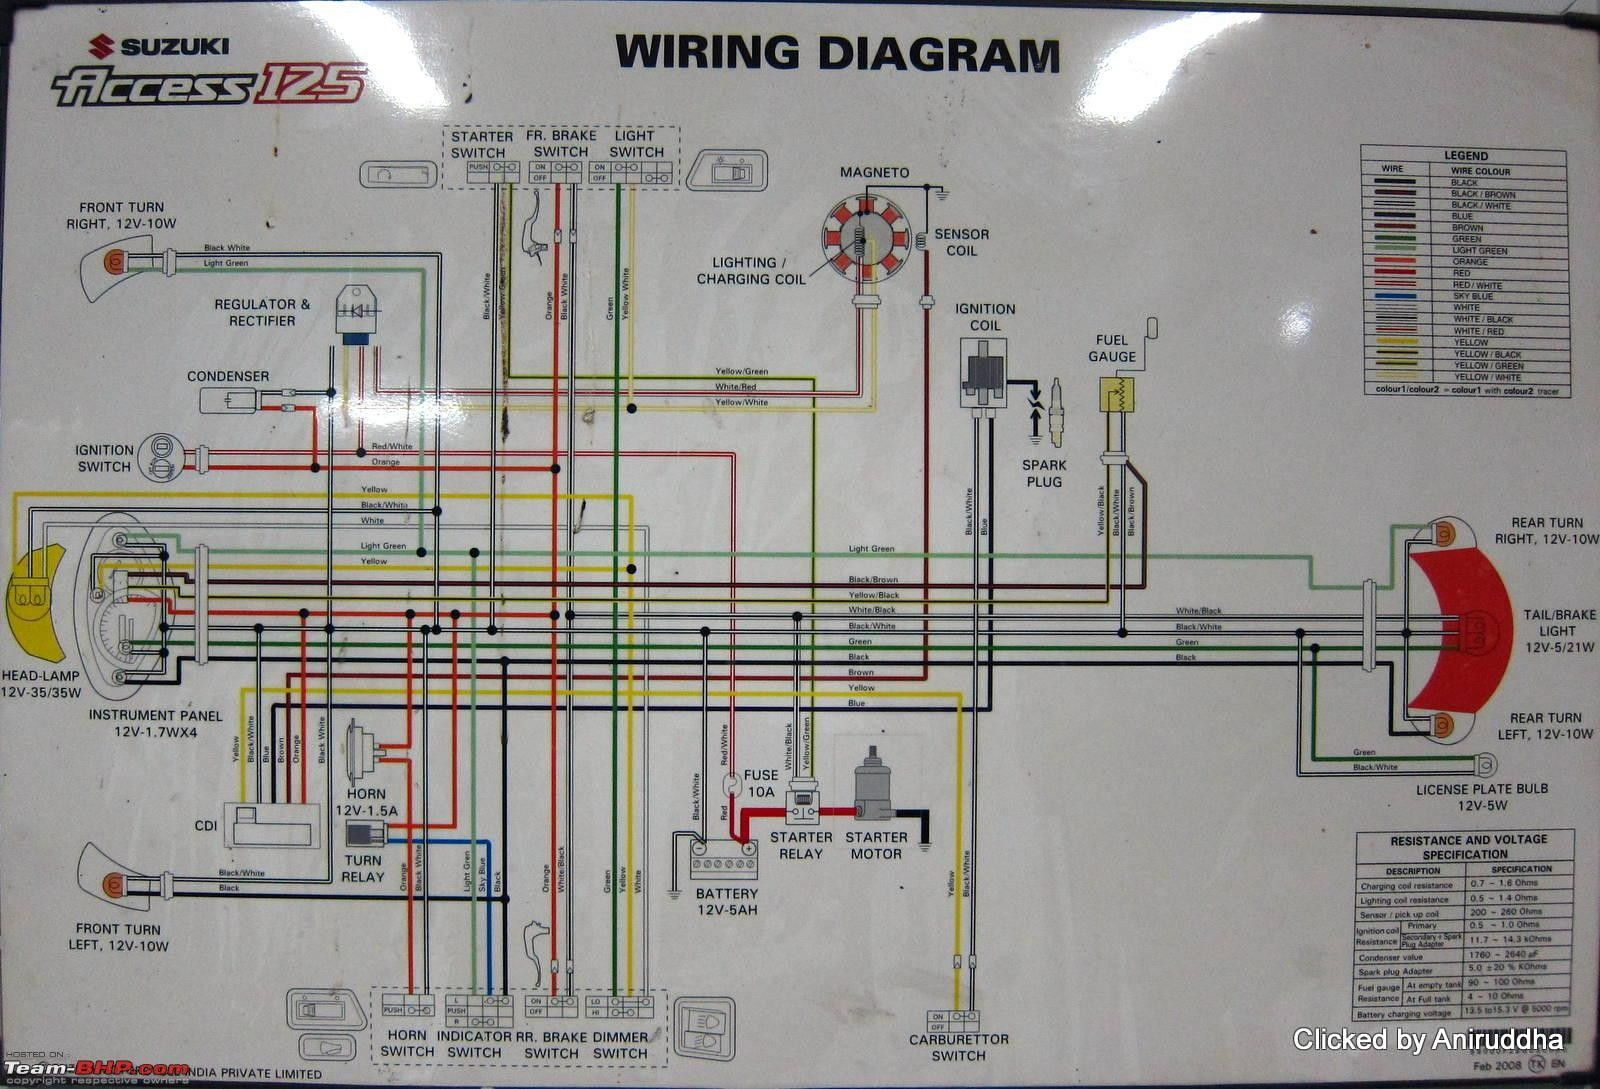 Tvs Motorcycle Wiring Diagram - 2007 Bmw 328i Fuse Box Diagram -  bosecar.tukune.jeanjaures37.fr | Tvs Motorcycle Wiring Diagram |  | Wiring Diagram Resource